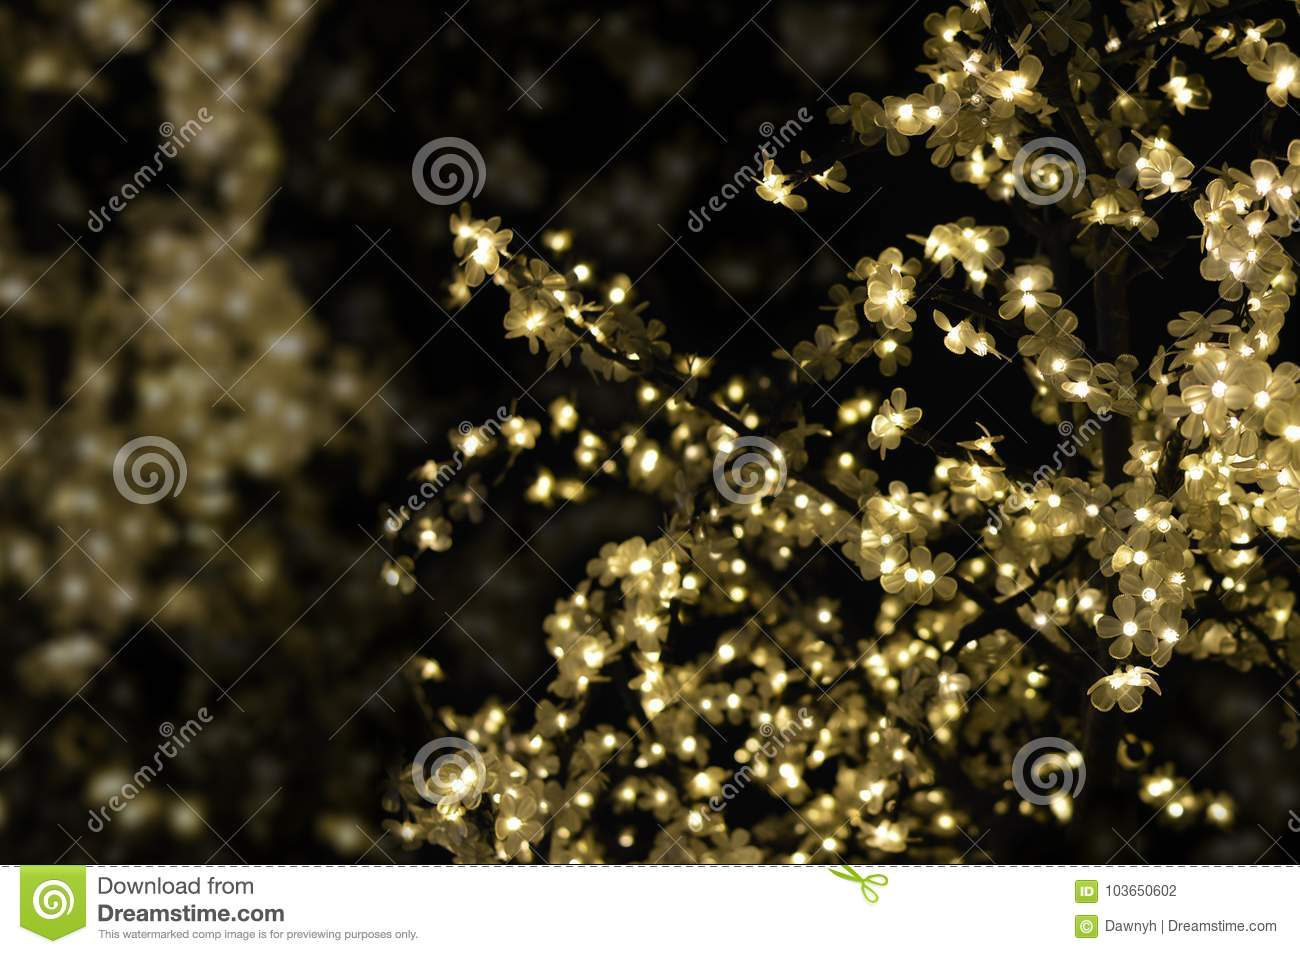 gold christmas lights with black background